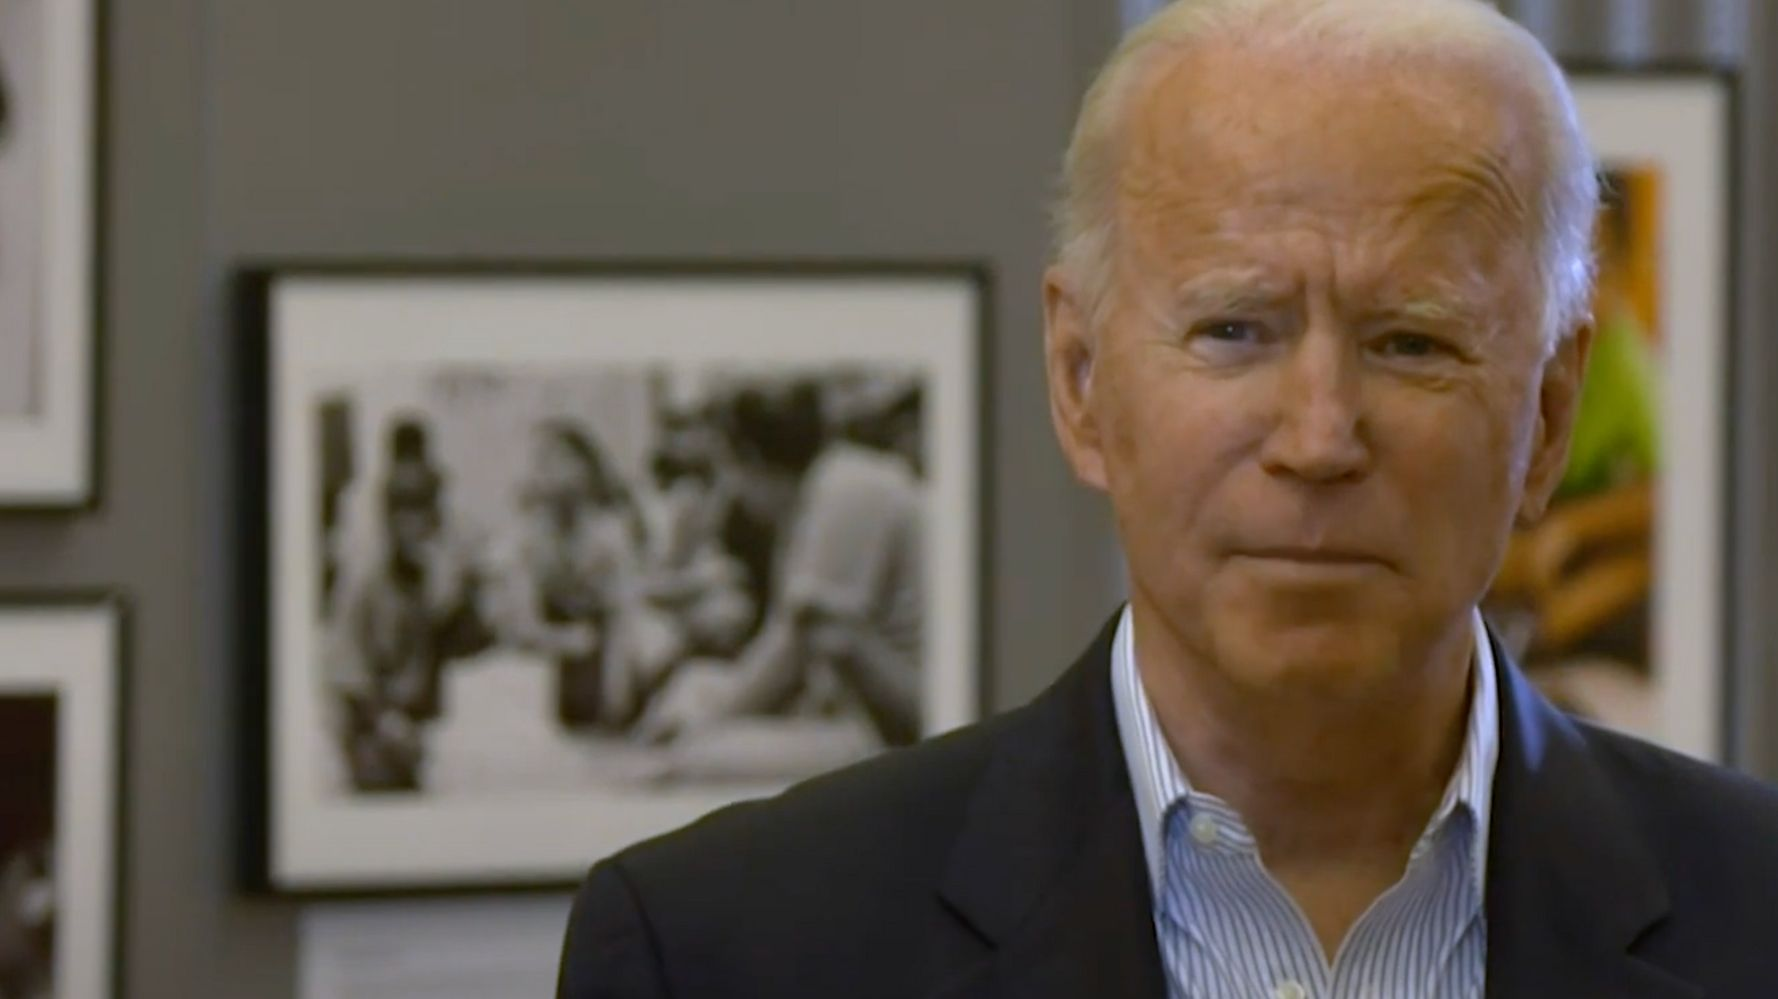 Biden Says Texas Facility For Unaccompanied Migrants 'Won't Stay Open Very Long'